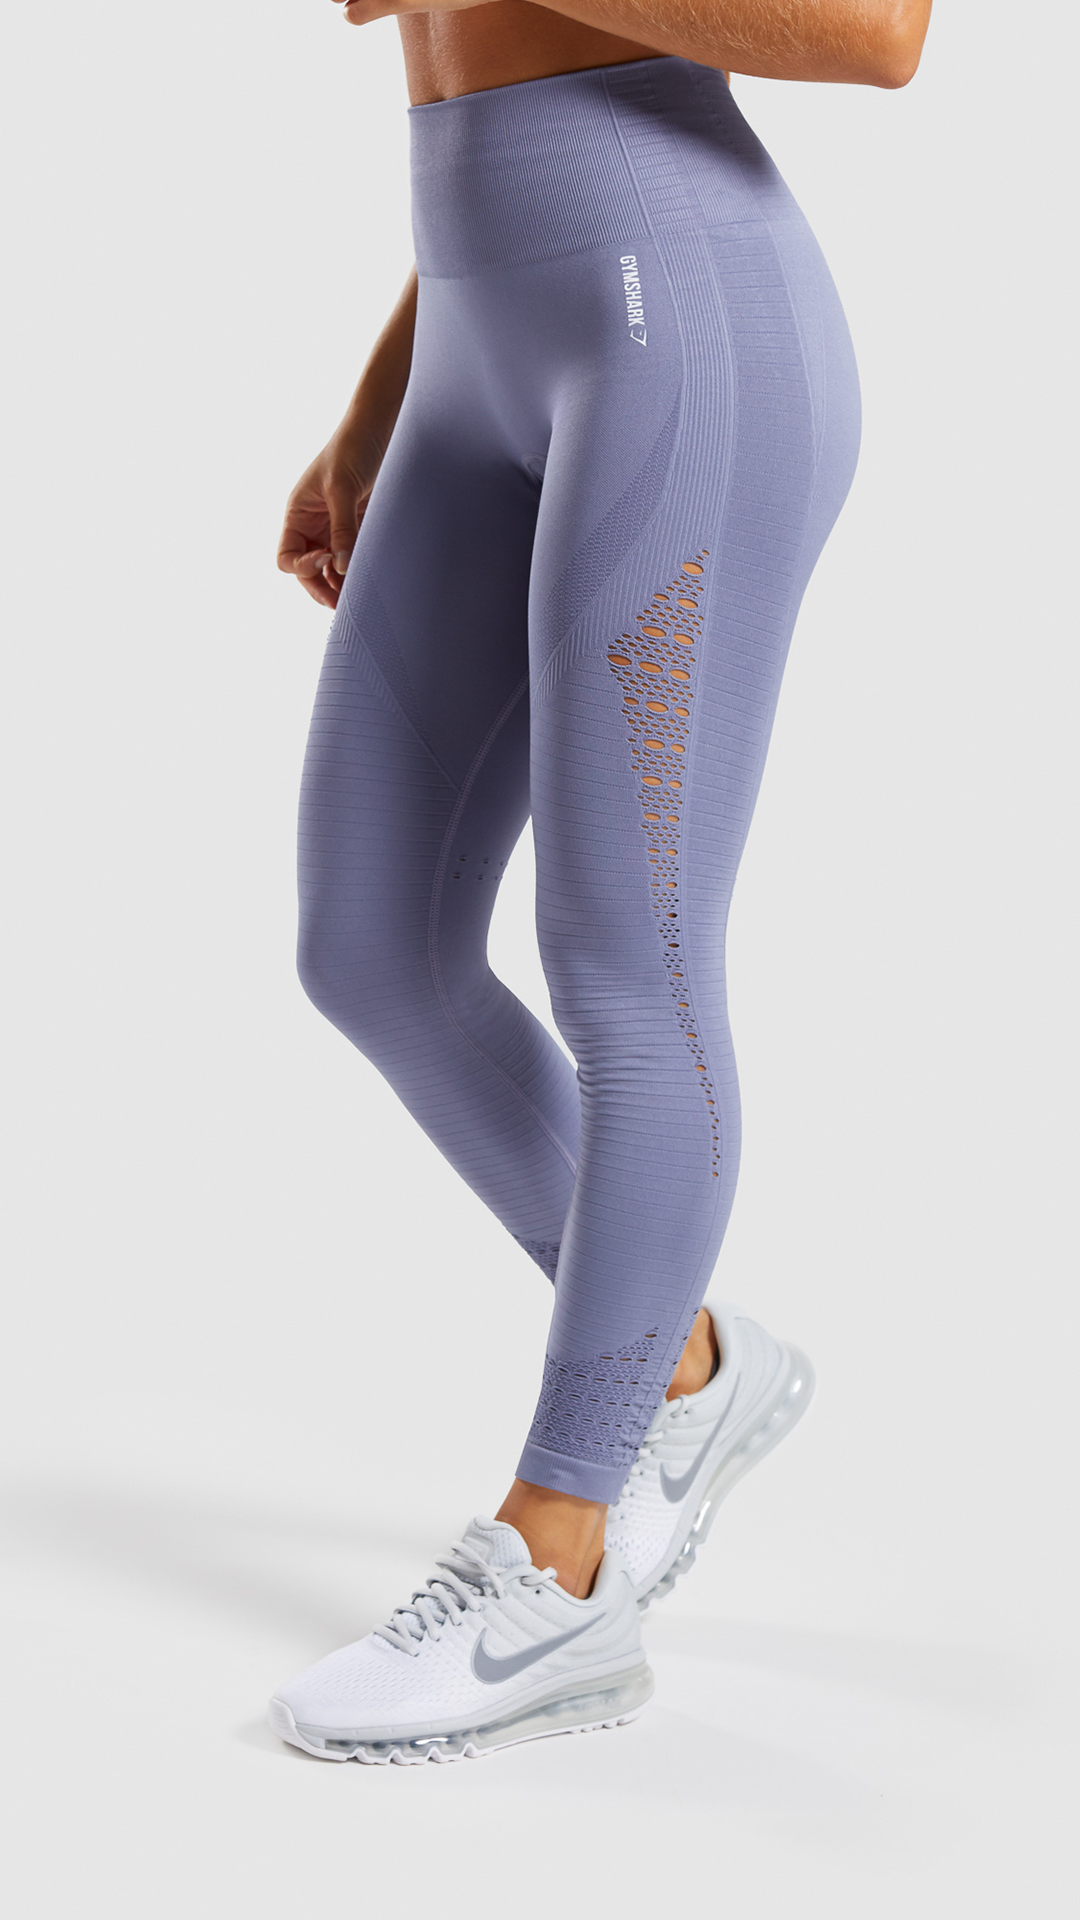 a34e8eb6525e65 The Gymshark Energy Seamless are the perfect Autumn workout wardrobe  addition for you. #Gymshark #Gym #Sweat #Train #Perform #Seamless #Exercise  ...